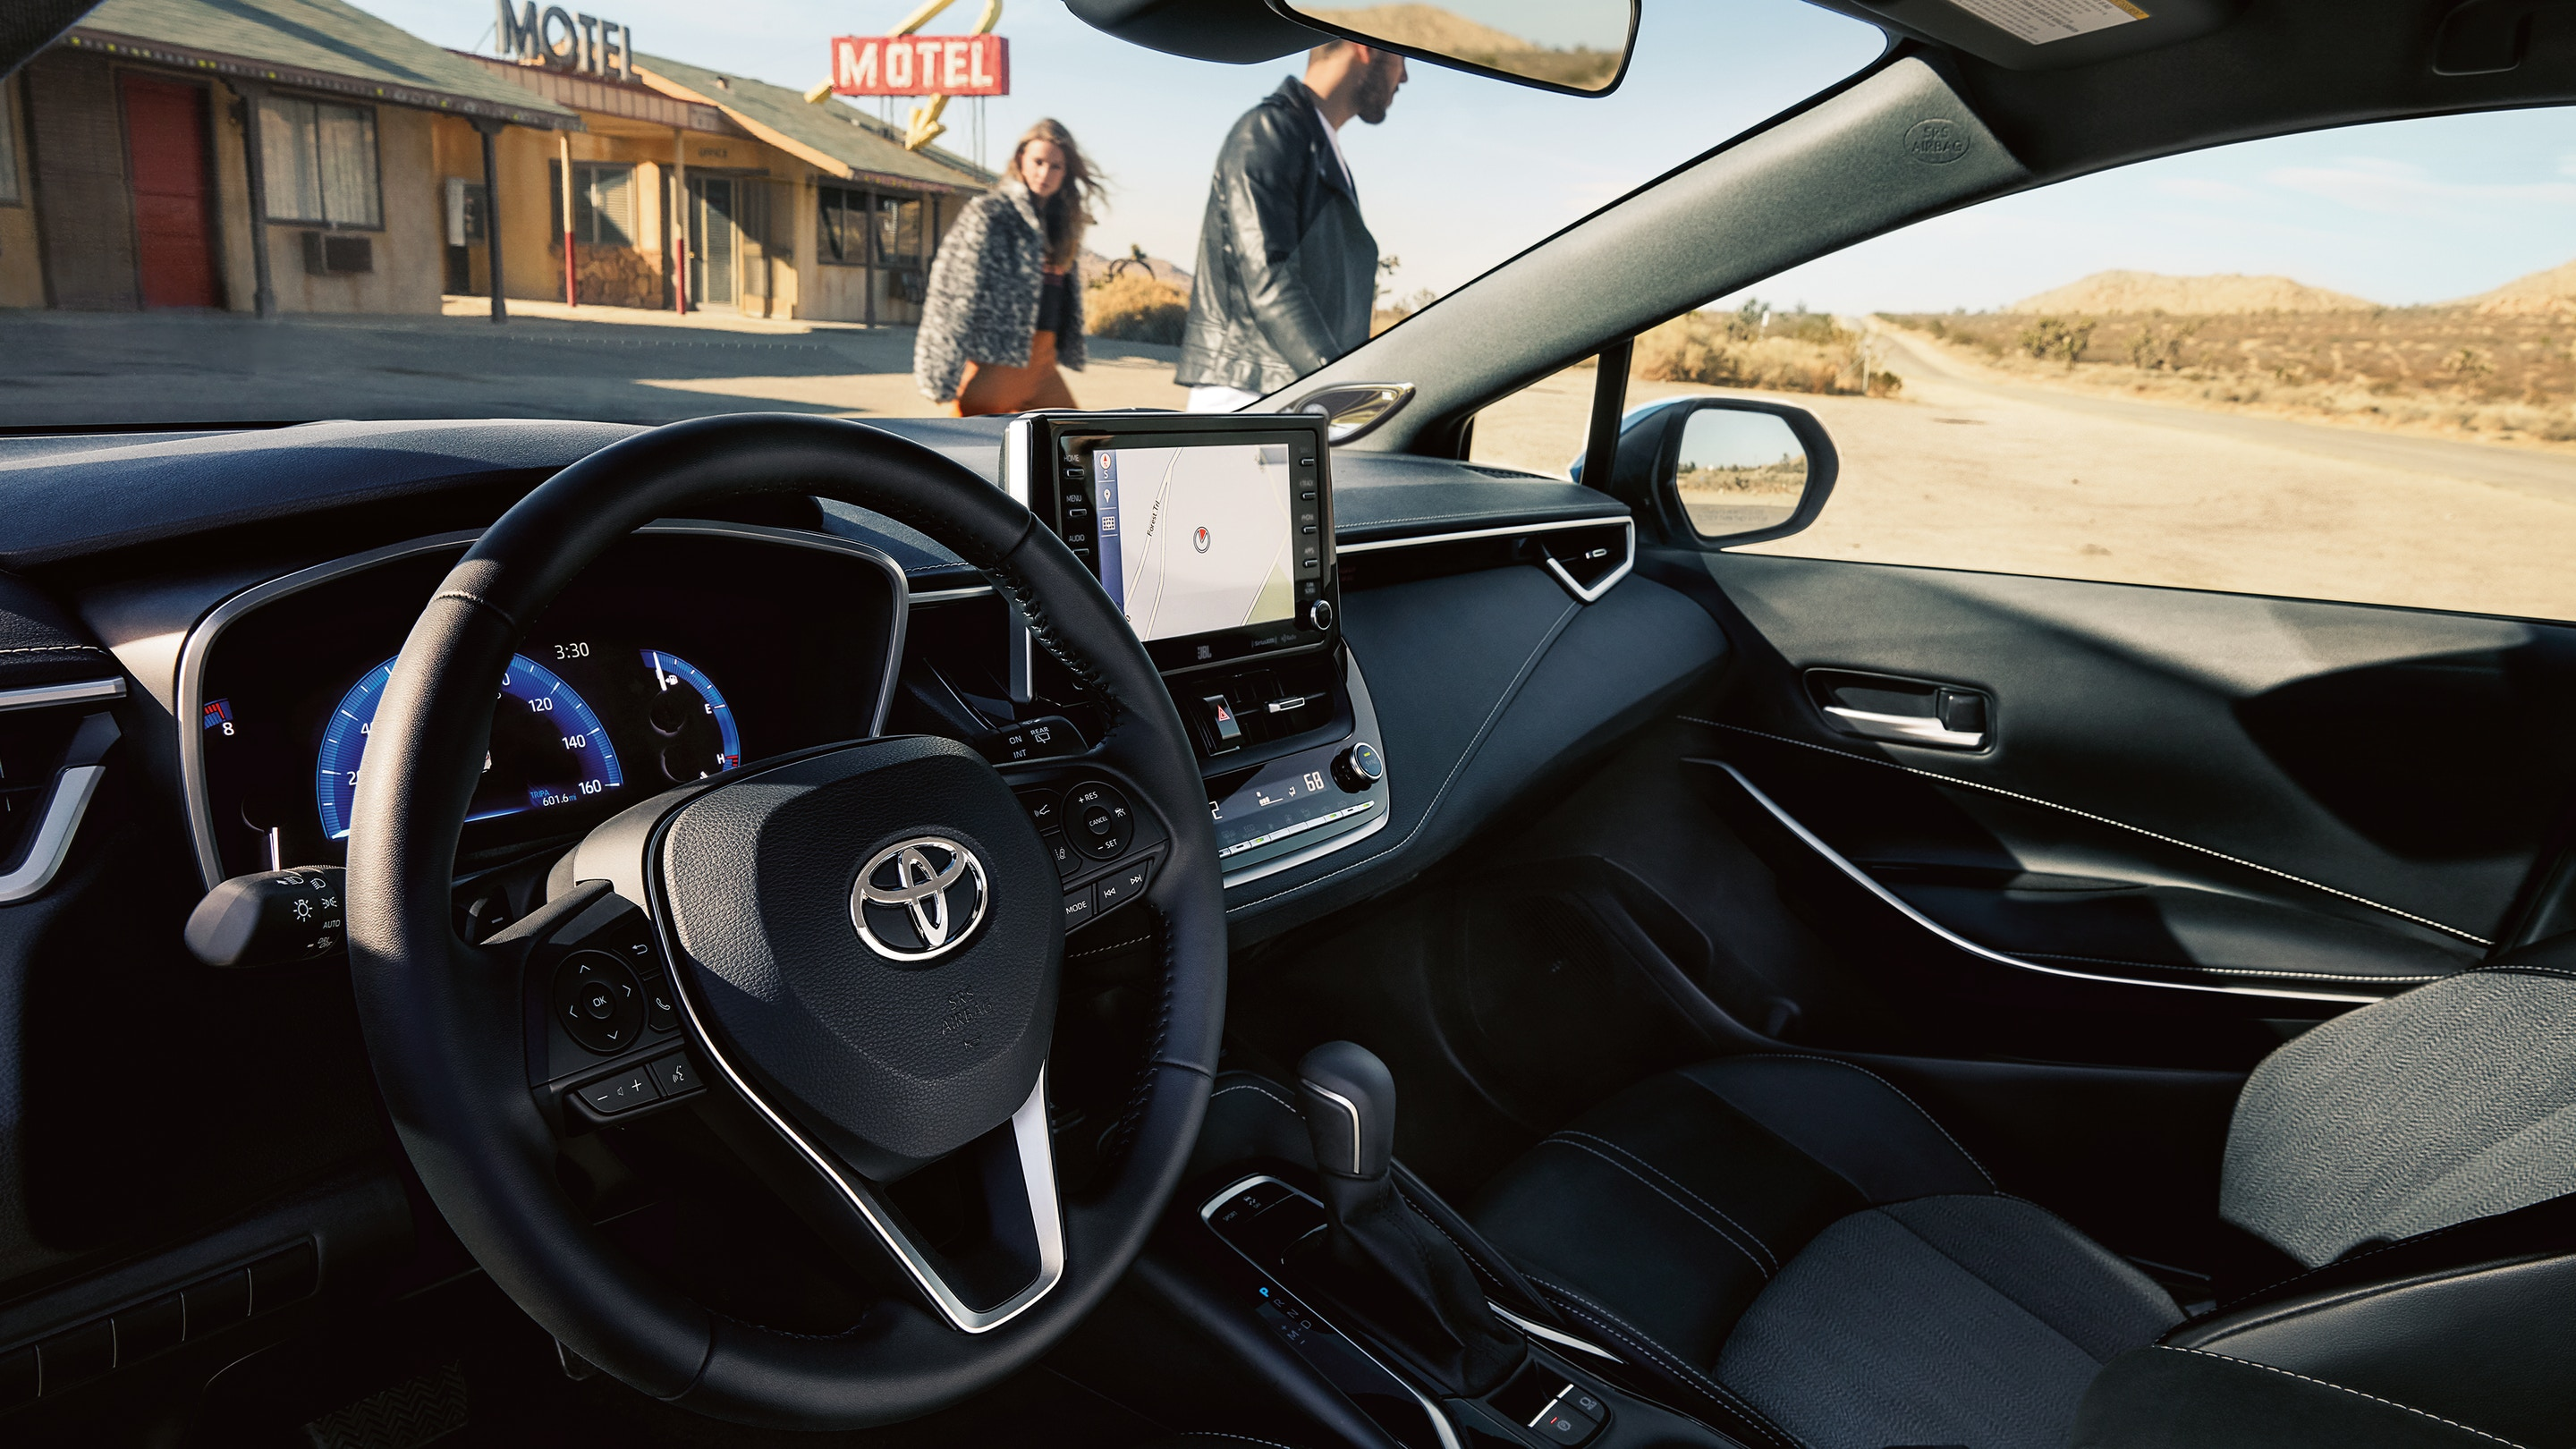 2019 Corolla hatchback interior